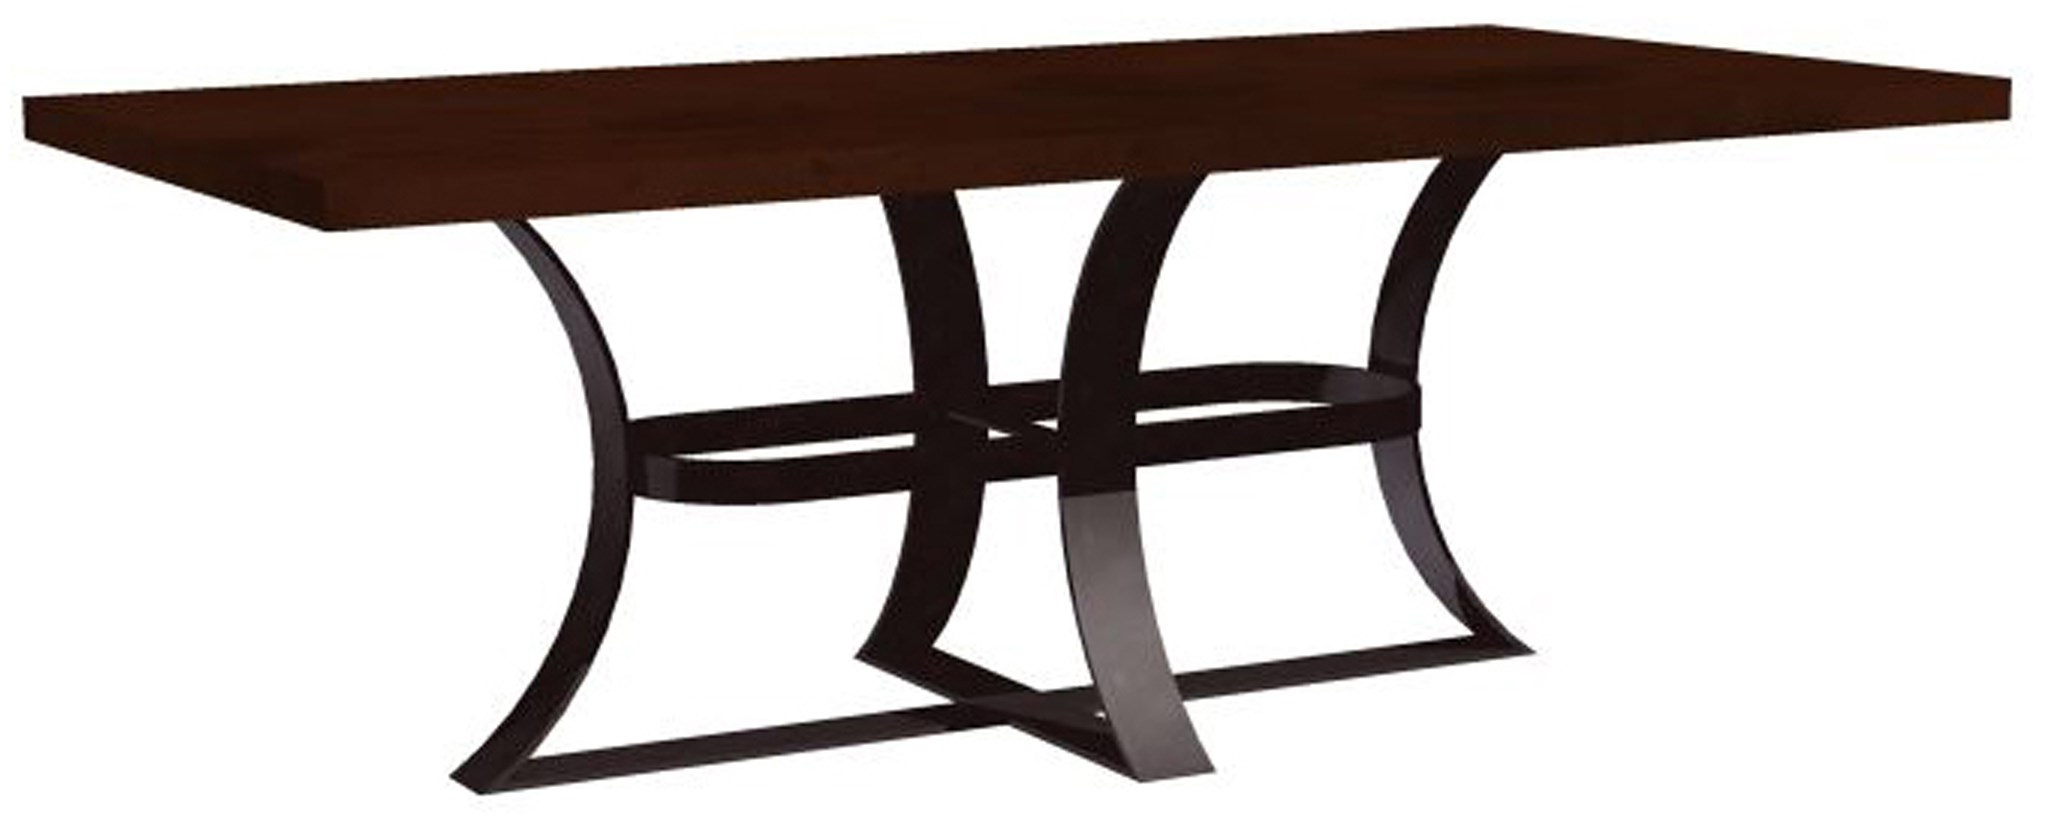 Recent Avery Dining Table With Rectangular Hammered Dark Brown Copper Top In Avery Rectangular Dining Tables (View 14 of 25)